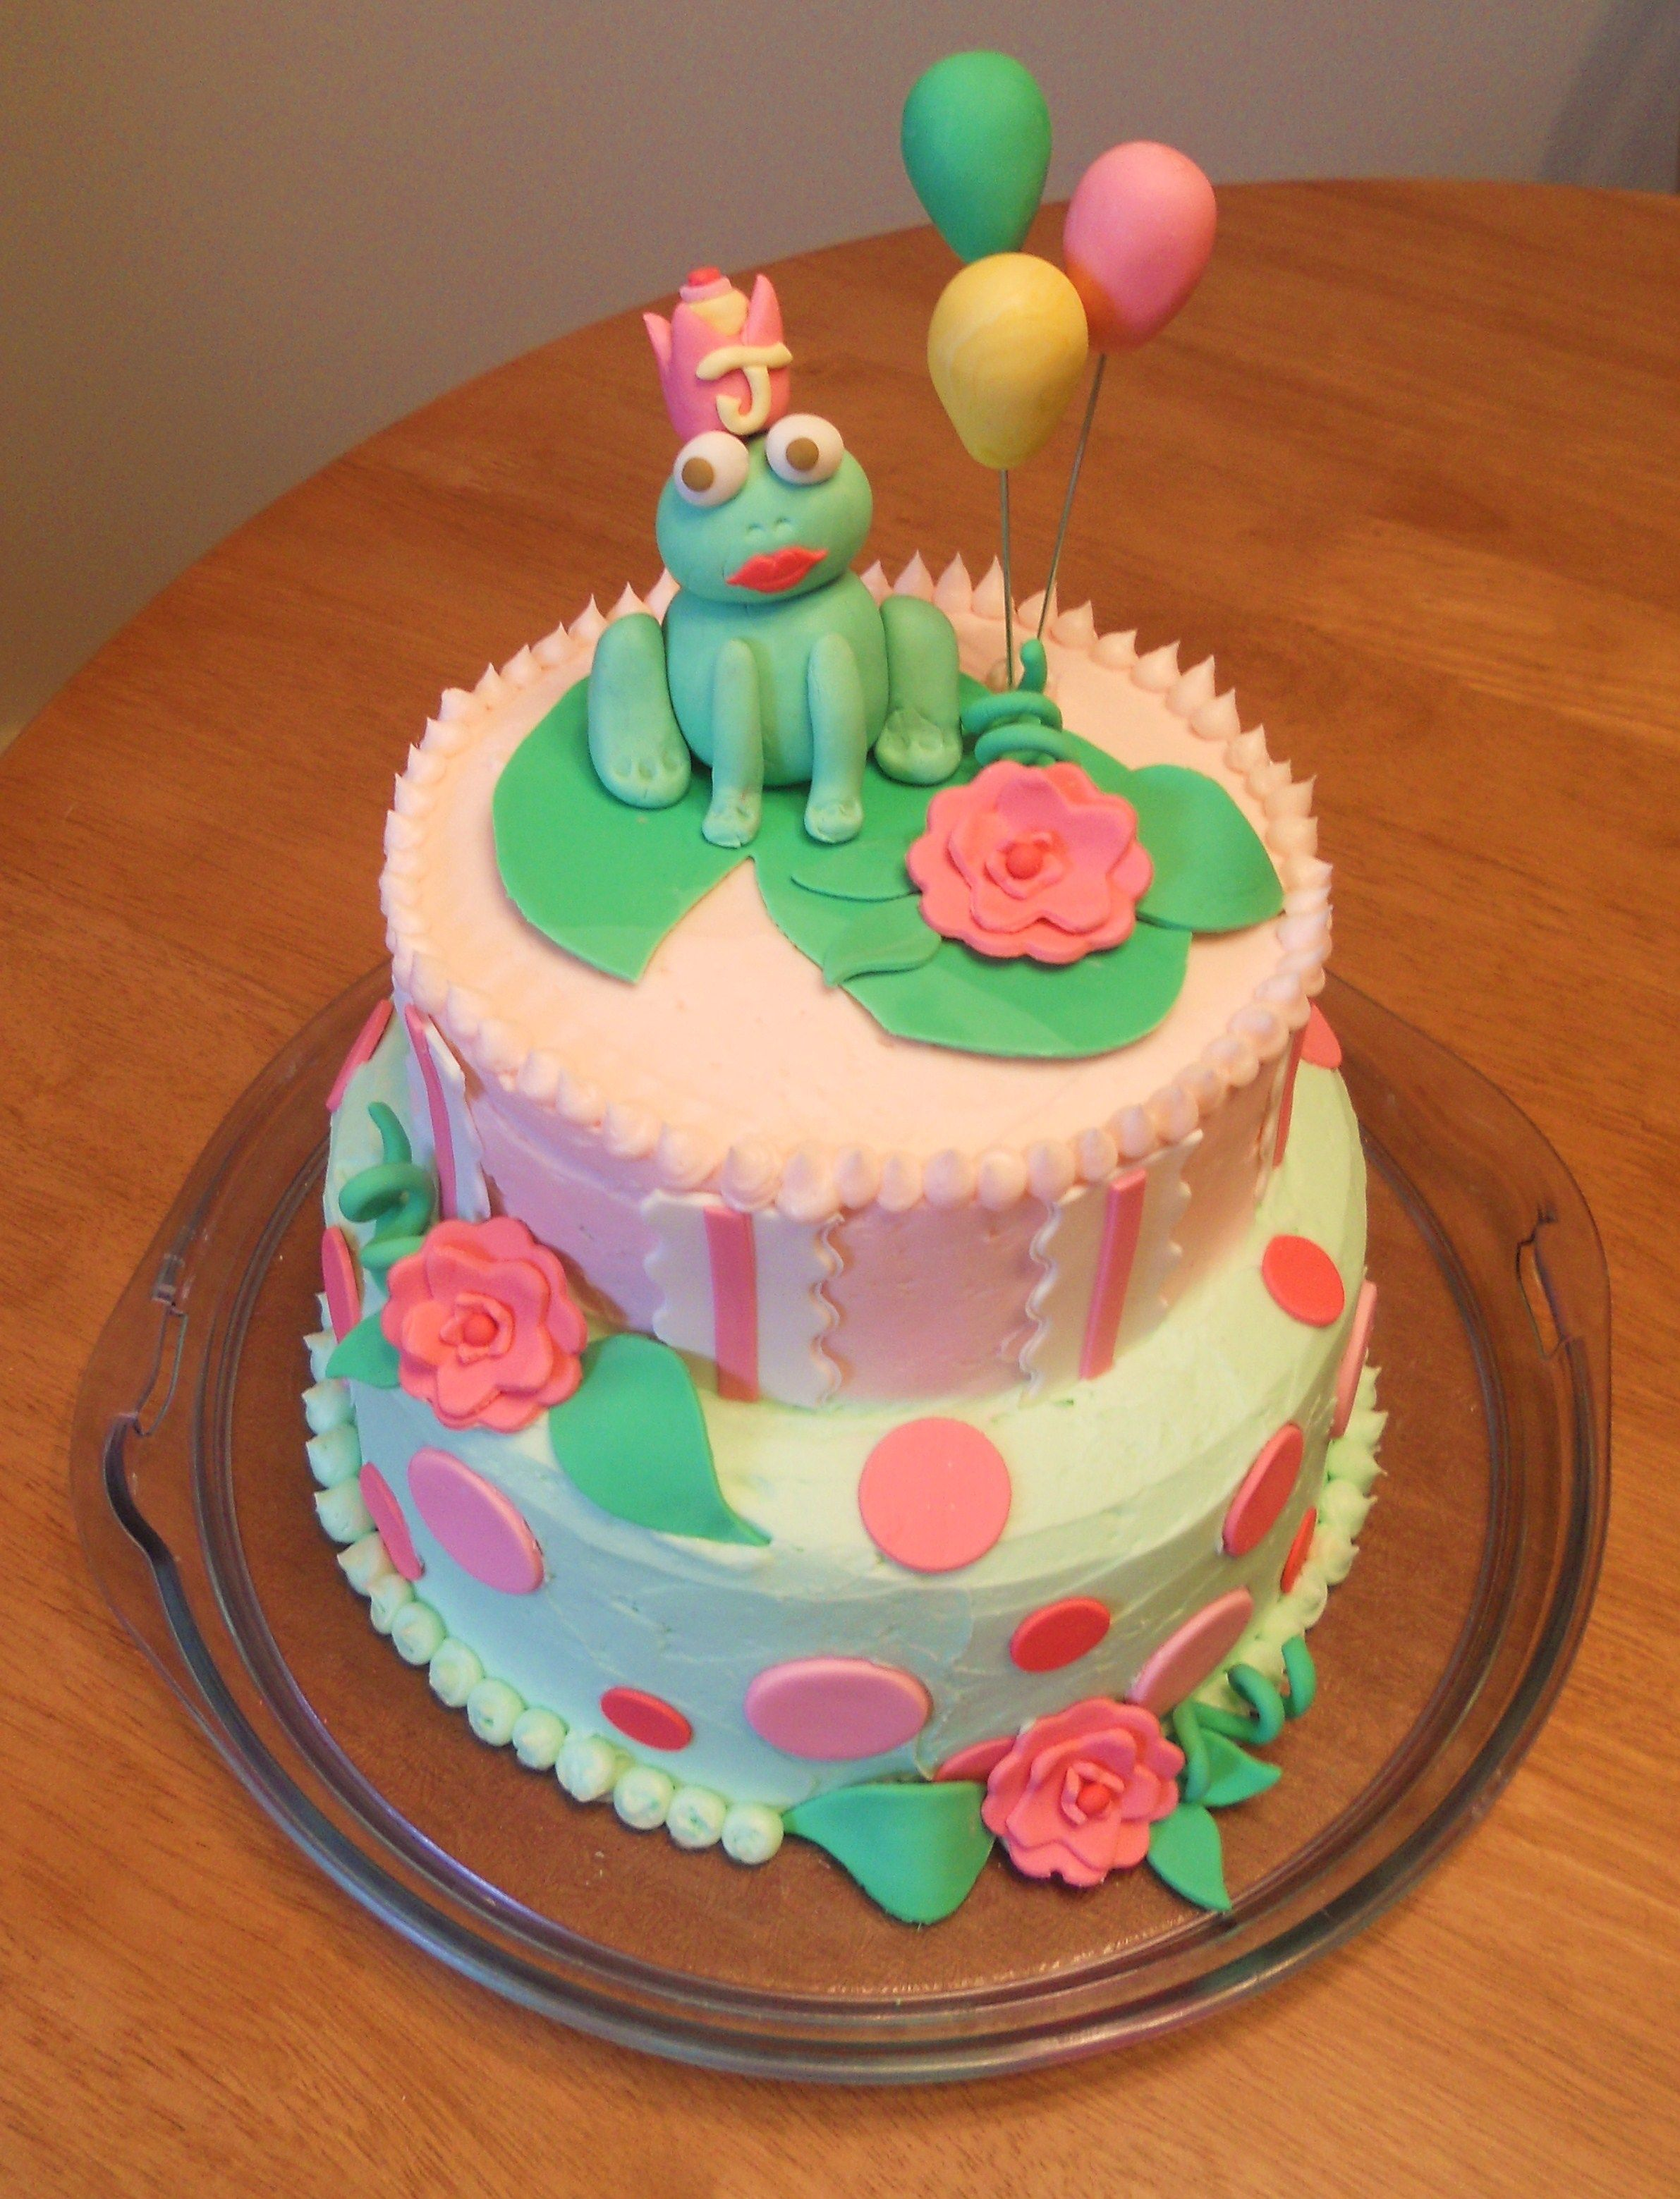 Frog On A Lily Pad With Birthday Balloons Cake Flavor Almond And Raspberry